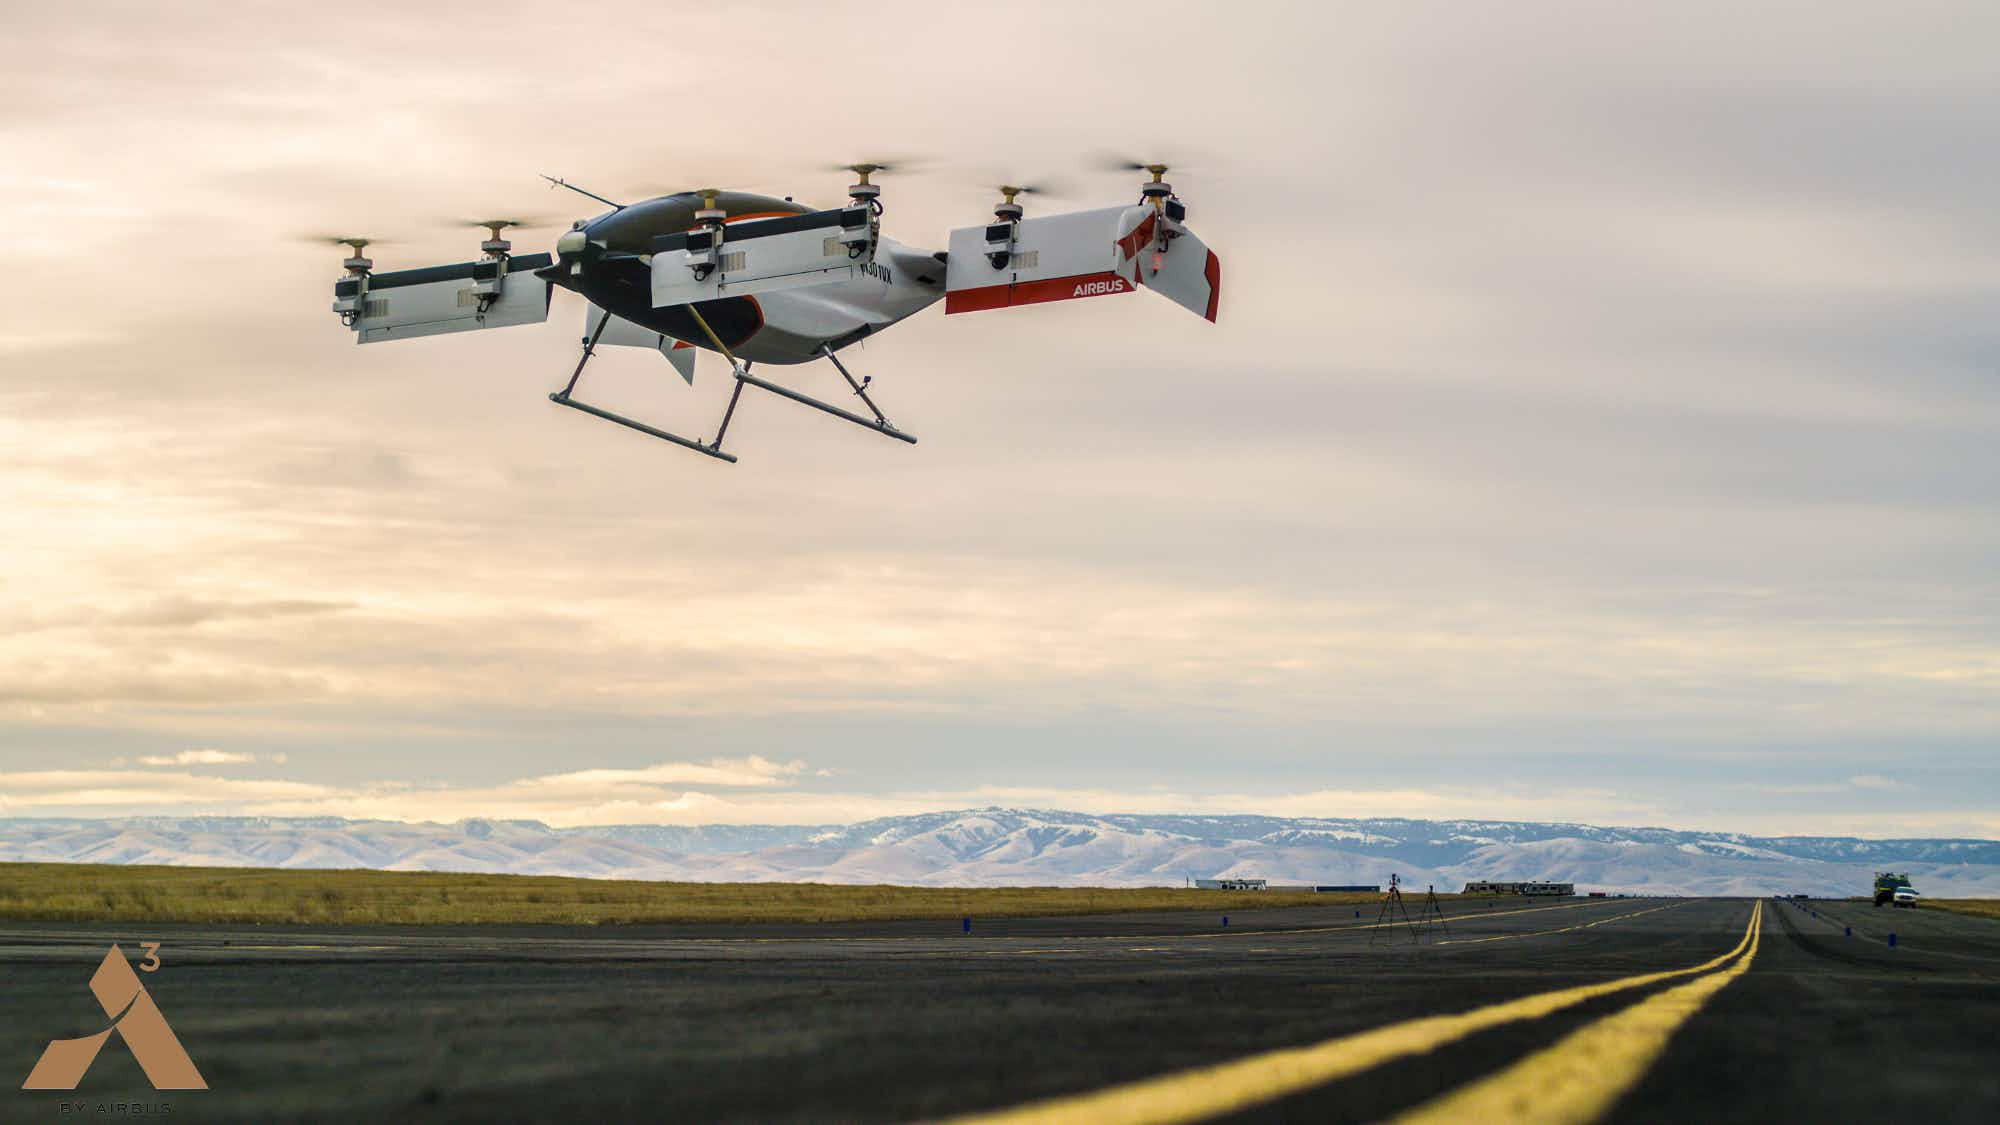 Watch Airbus testing its new all-electric, self-piloting flying taxi